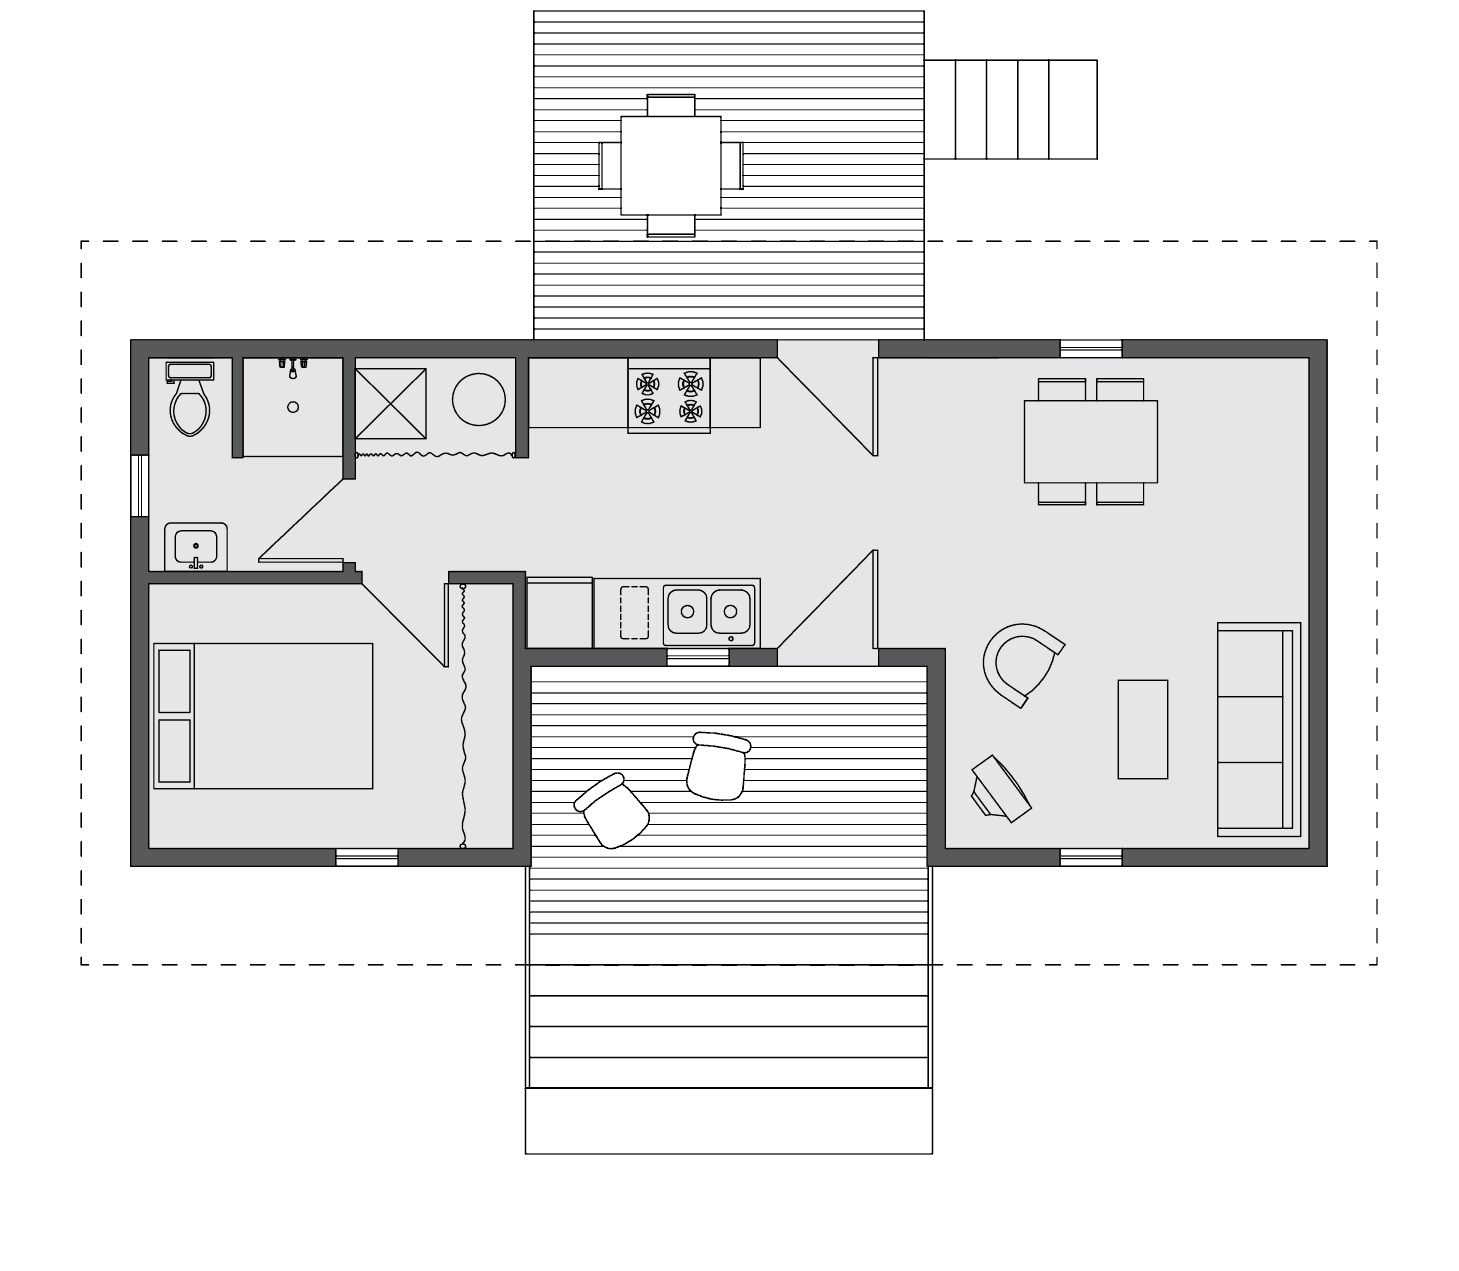 floor plan computer rendering